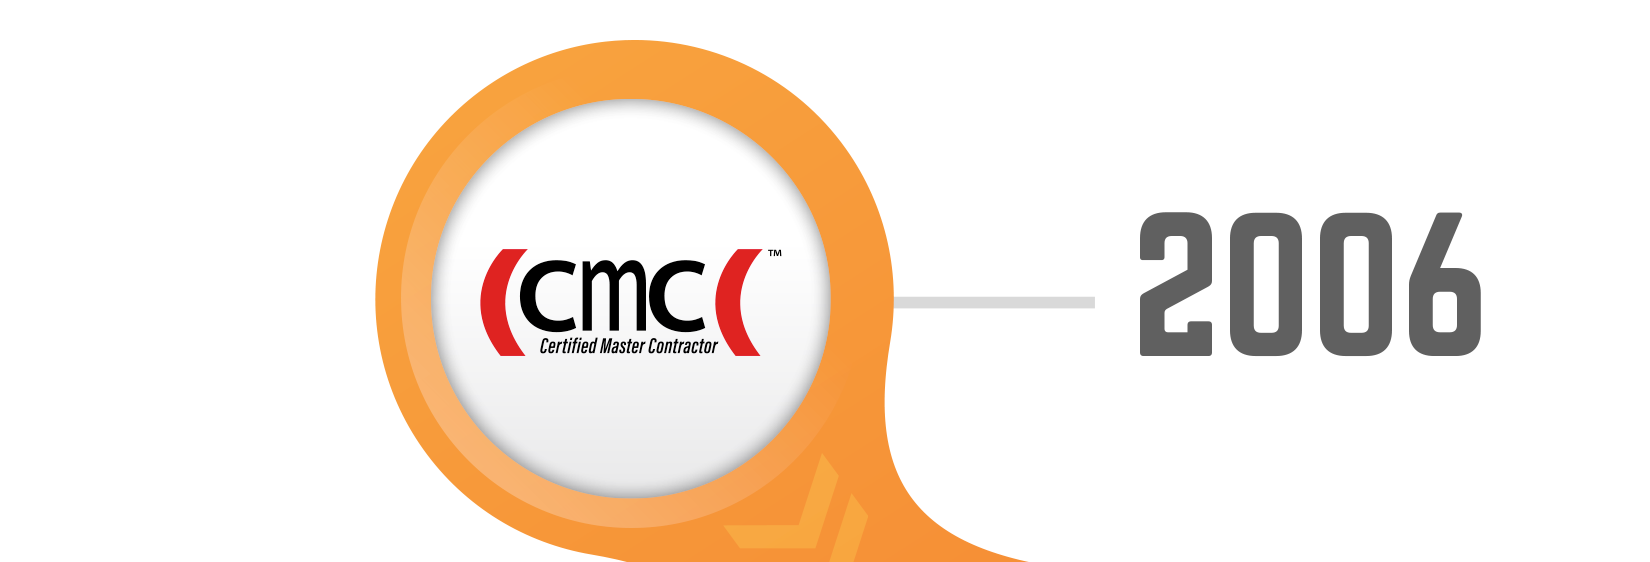 Kevin Rutherford created and presented the first CMC